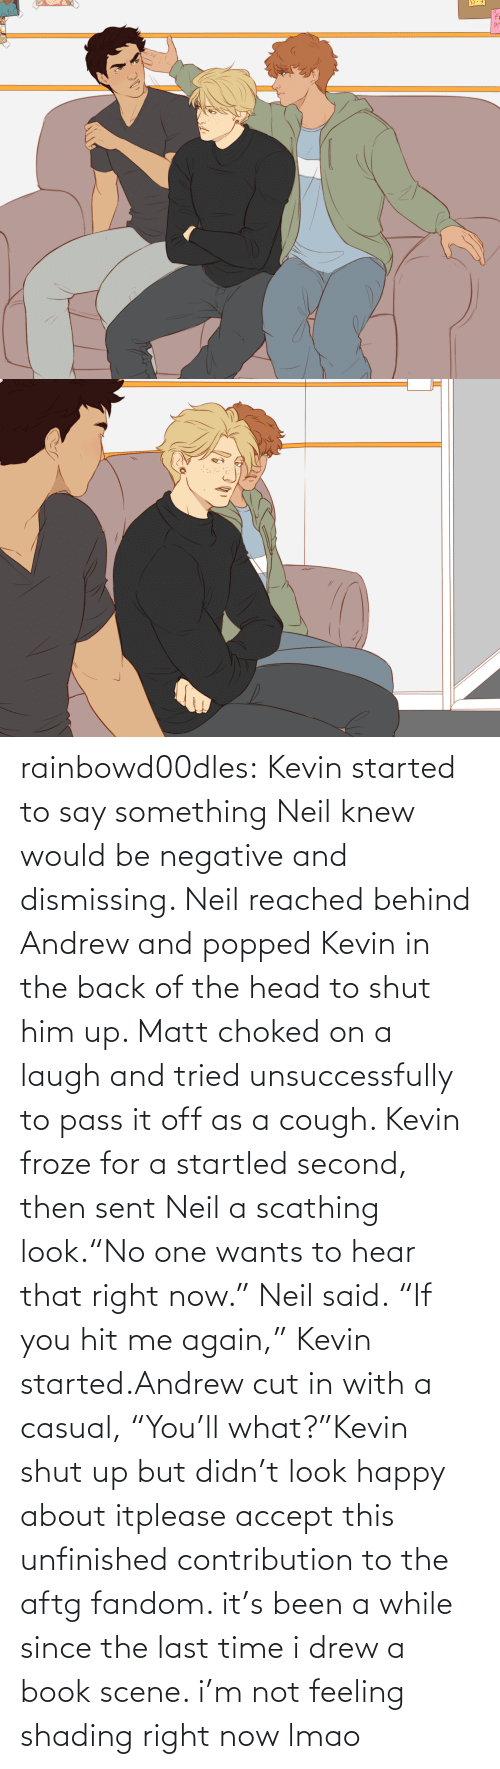 "scene: rainbowd00dles:  Kevin started to say something Neil knew would be negative and dismissing. Neil reached behind Andrew and popped Kevin in the back of the head to shut him up. Matt choked on a laugh and tried unsuccessfully to pass it off as a cough. Kevin froze for a startled second, then sent Neil a scathing look.""No one wants to hear that right now."" Neil said. ""If you hit me again,"" Kevin started.Andrew cut in with a casual, ""You'll what?""Kevin shut up but didn't look happy about itplease accept this unfinished contribution to the aftg fandom. it's been a while since the last time i drew a book scene. i'm not feeling shading right now lmao"